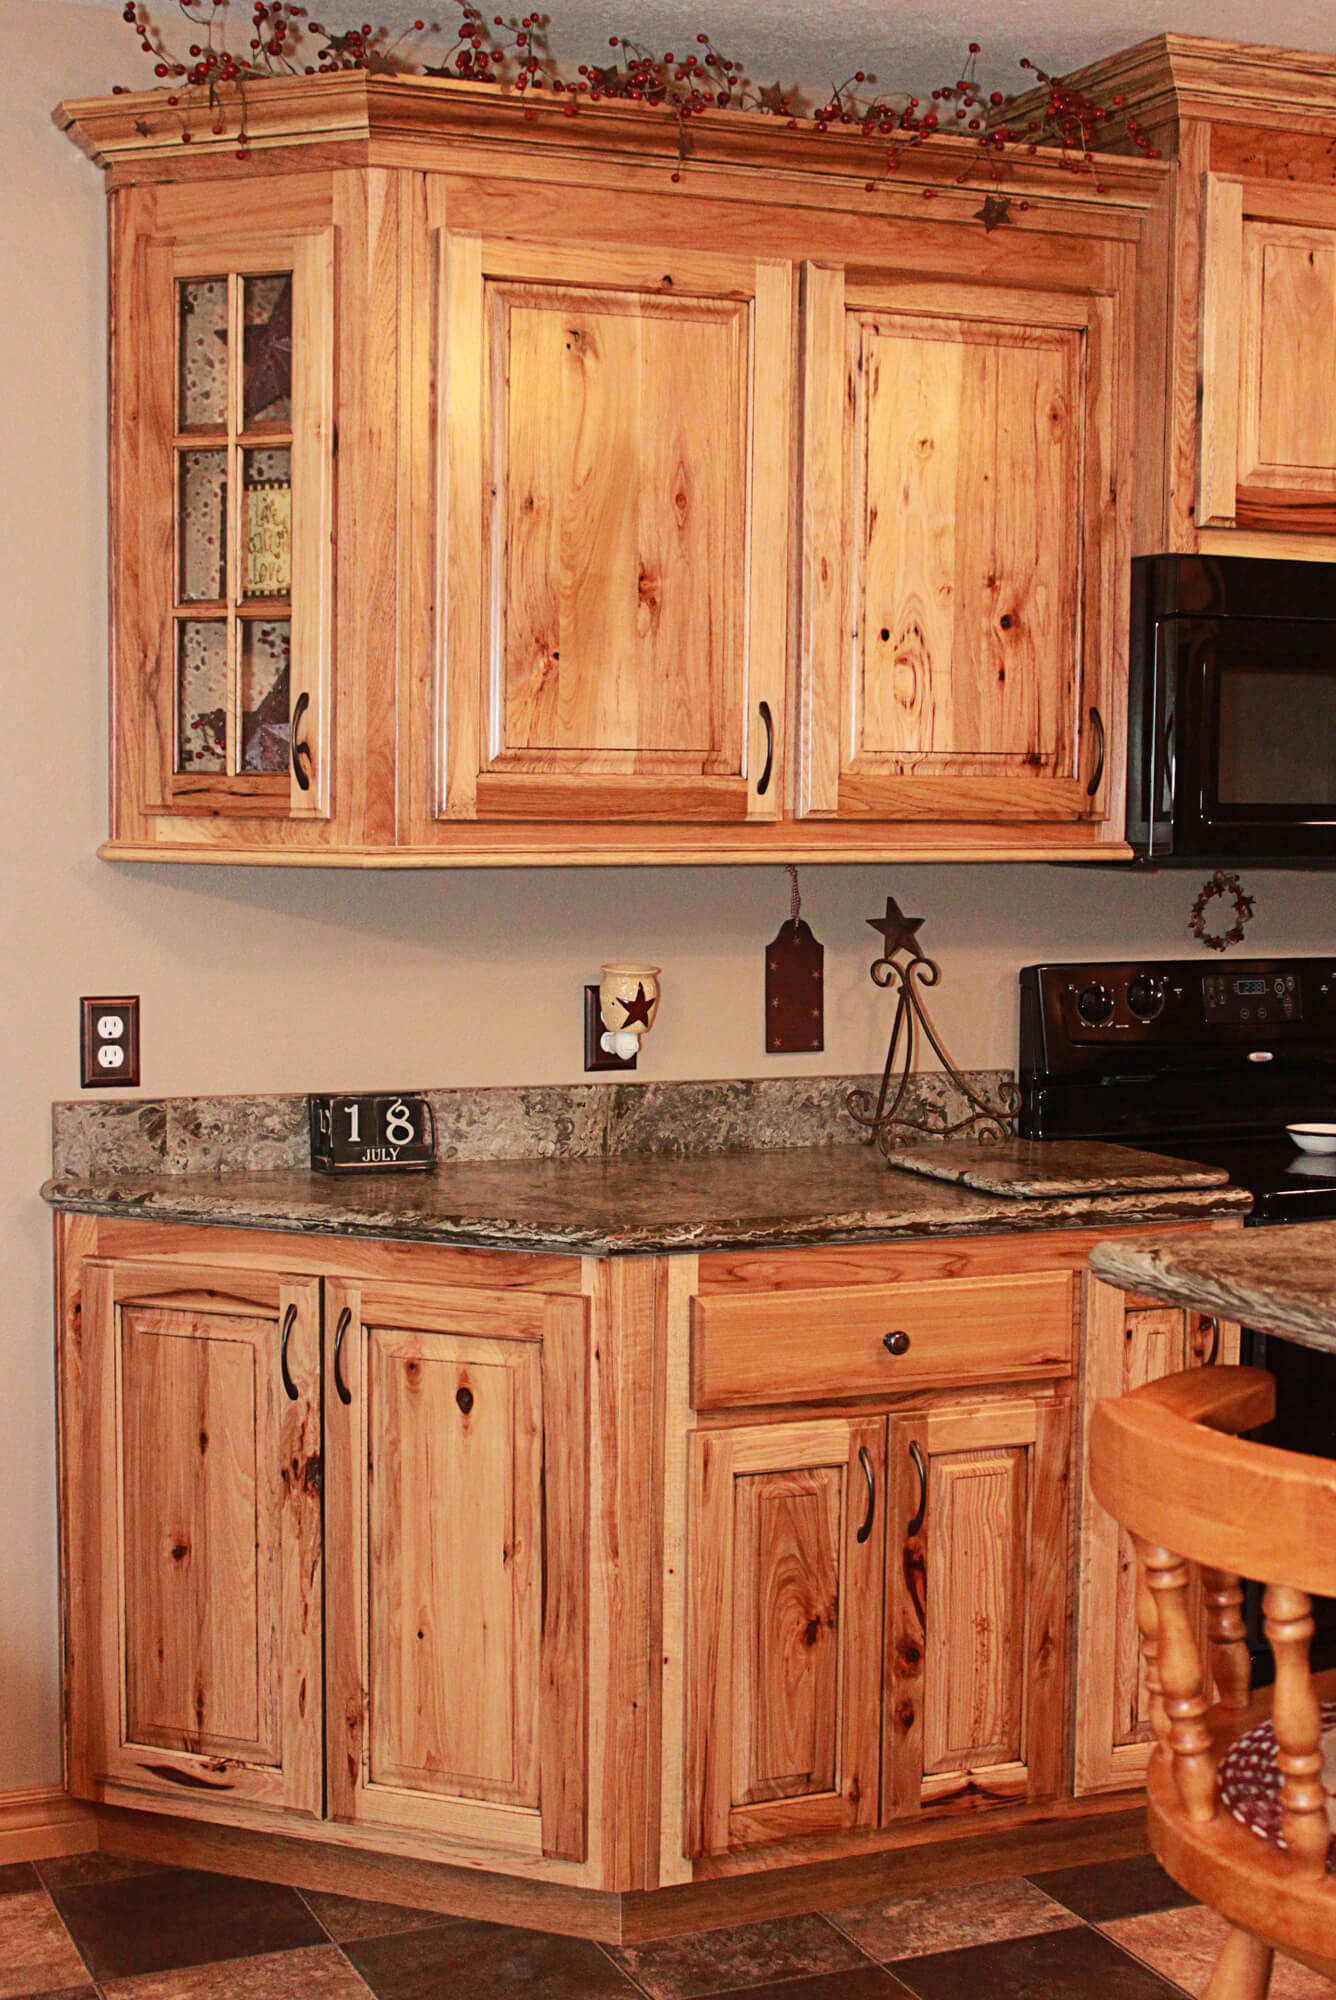 The cabinets plus rustic hickory kitchen cabinets for Cabinet kitchen cabinet